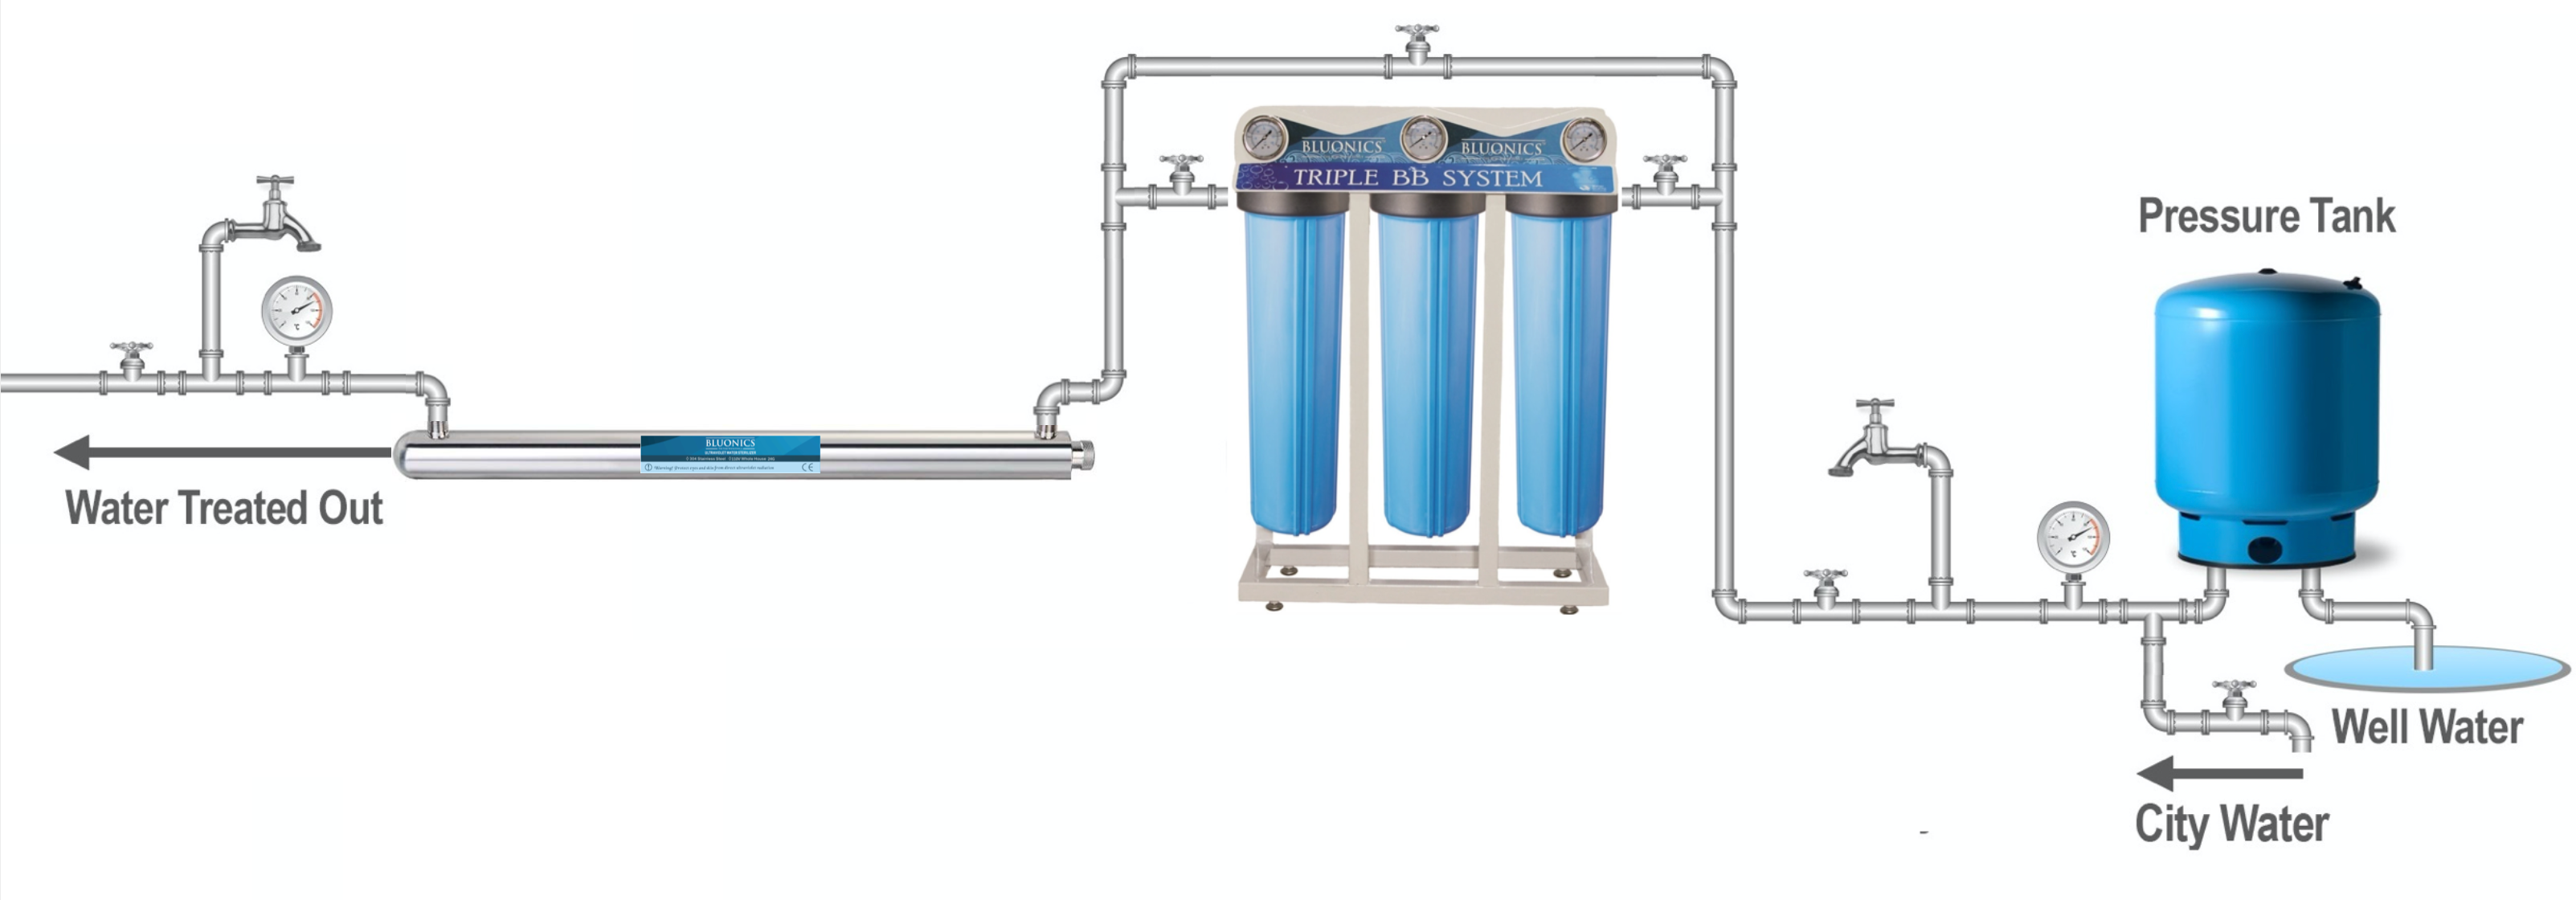 Ultraviolet UV Sterilizer Whole House Water Filter Purifier Well Water